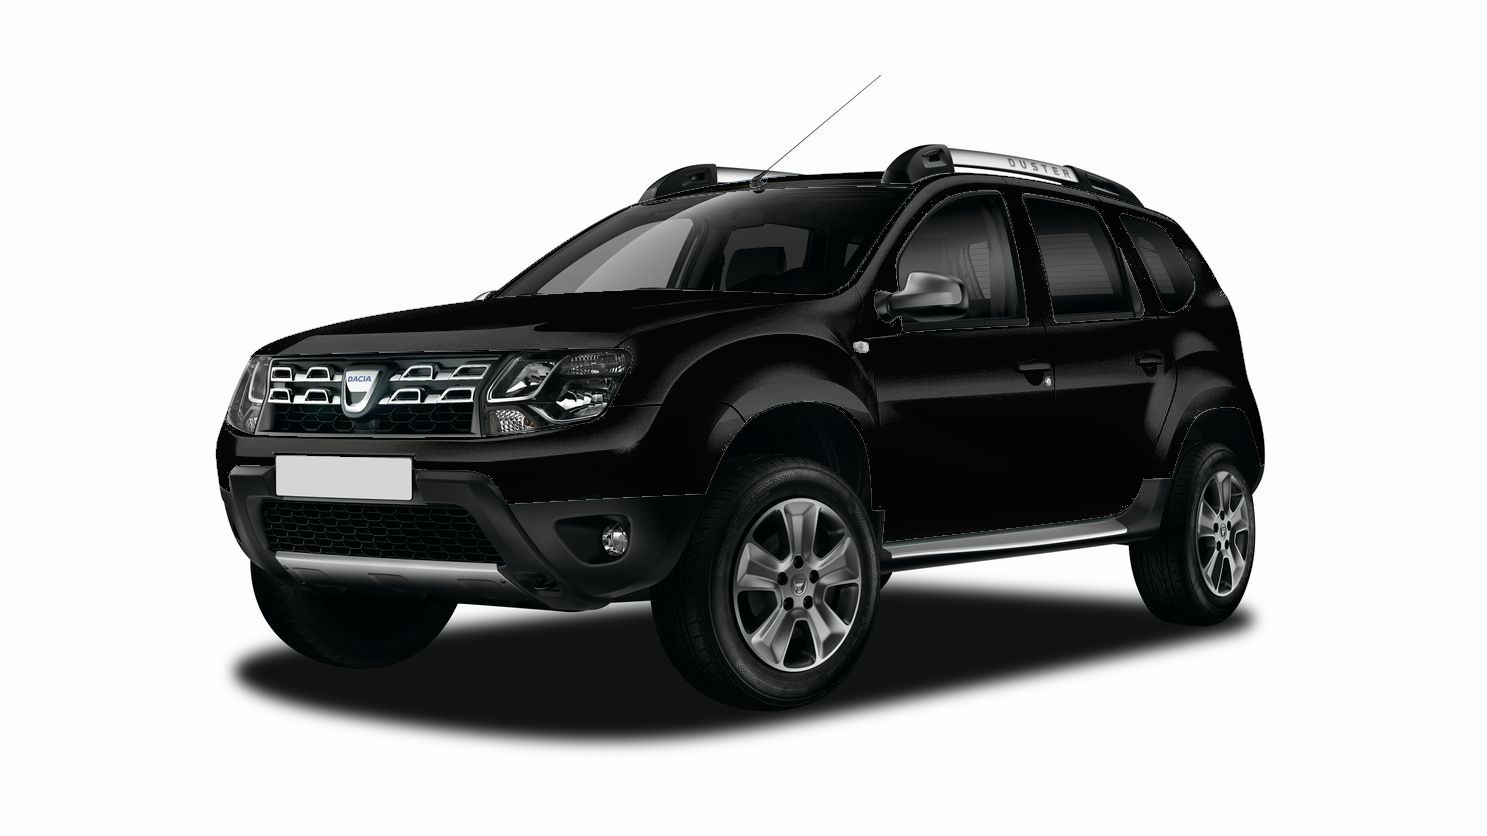 dacia duster 4x2 et suv 5 portes diesel 1 5 dci 110 4x2 auto bo te automatique ou. Black Bedroom Furniture Sets. Home Design Ideas